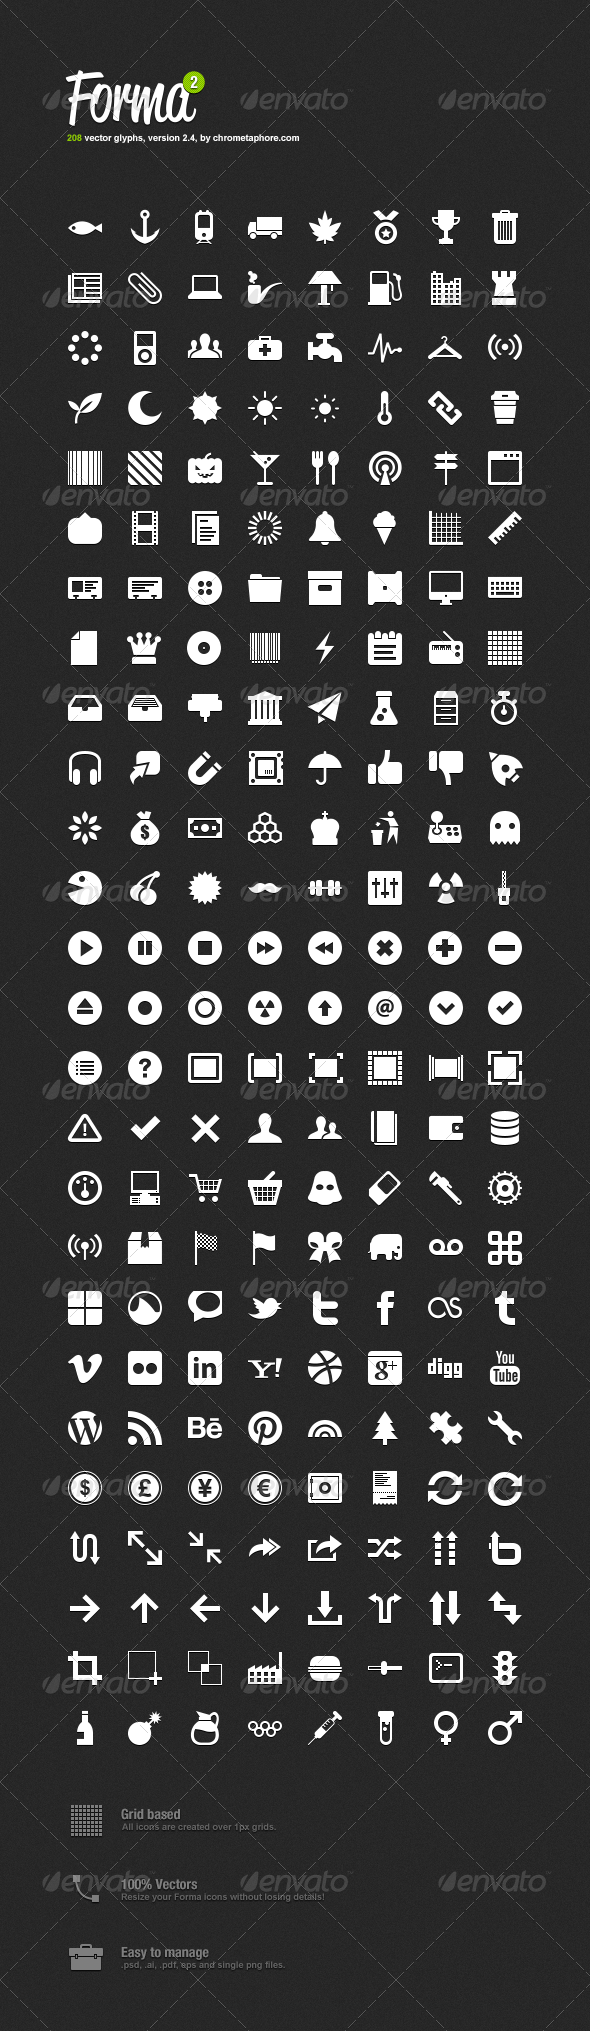 GraphicRiver Forma Icon Pack 2 554858